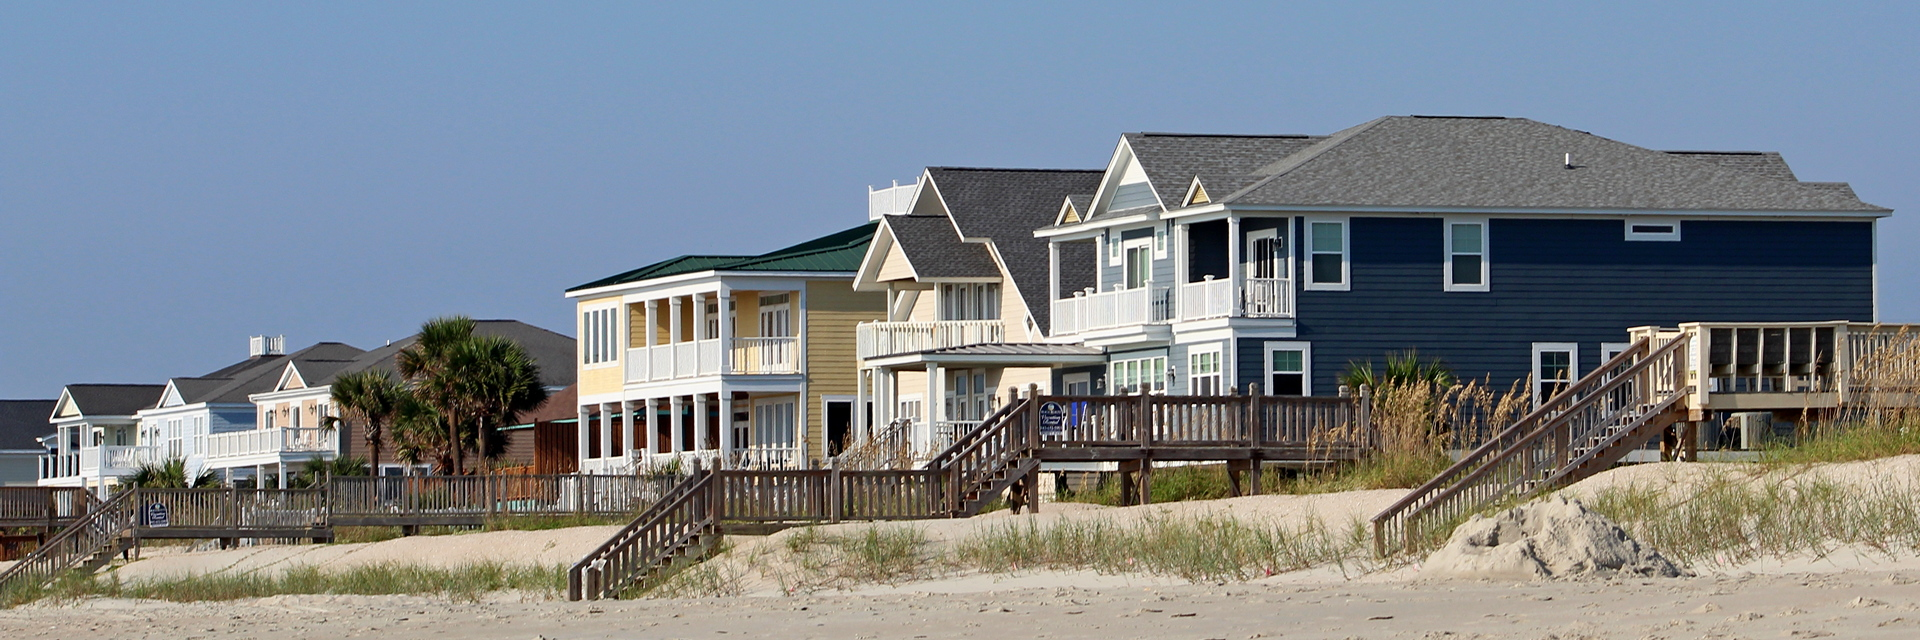 Oceanfront Homes in Myrtle Beach